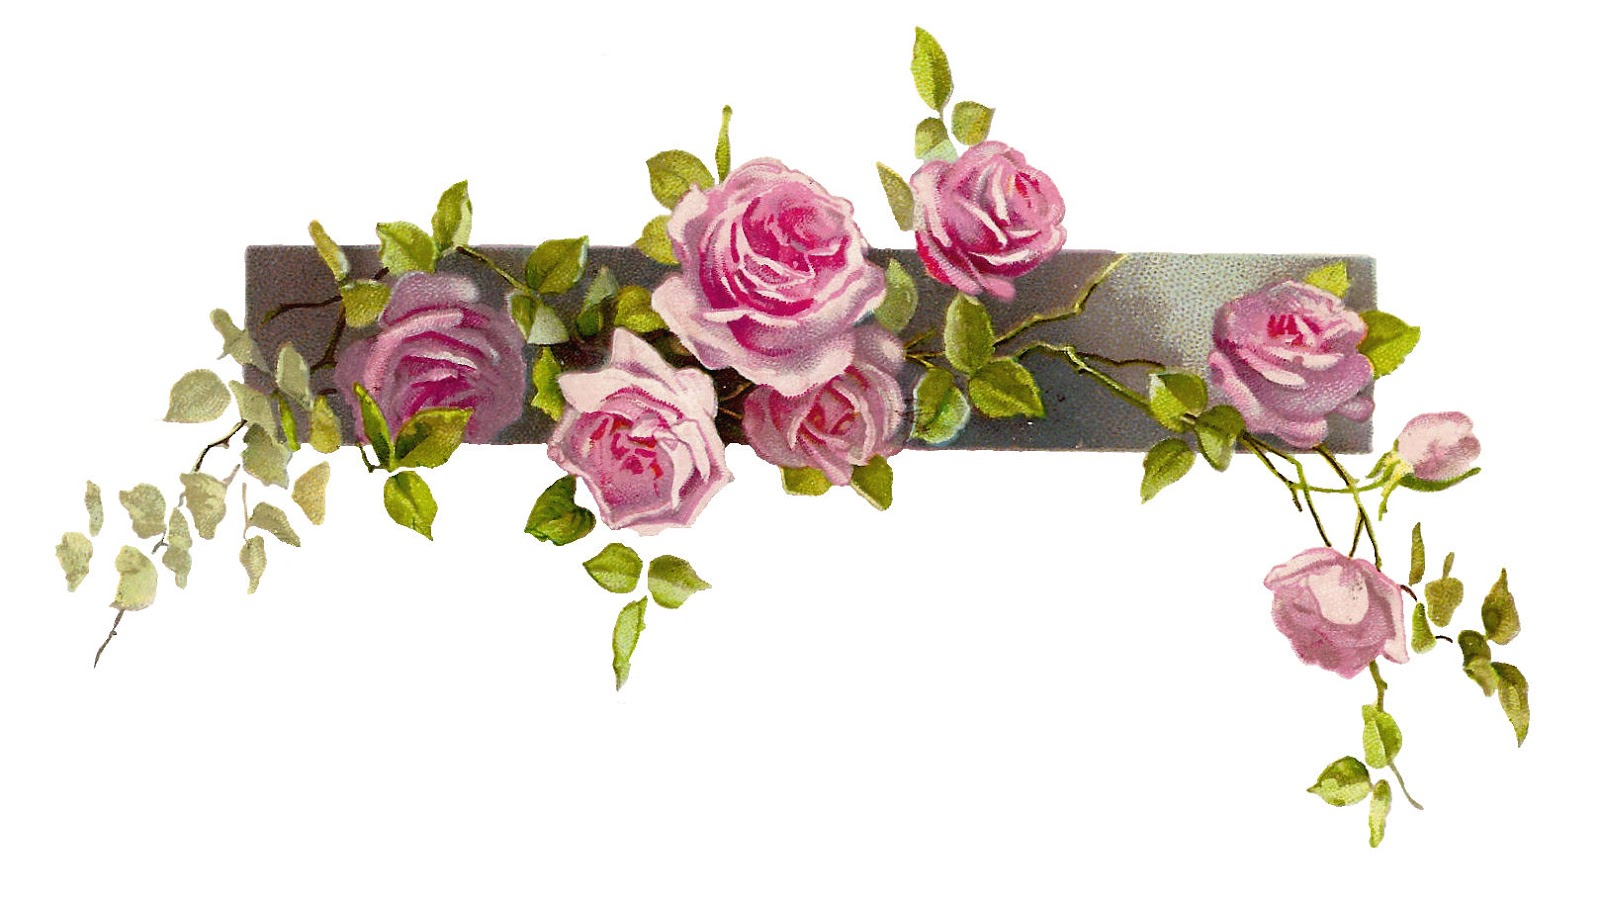 Free Flower Graphic  Vintage Pink Rose Clip Art Branch and LeavesVintage Rose Clip Art